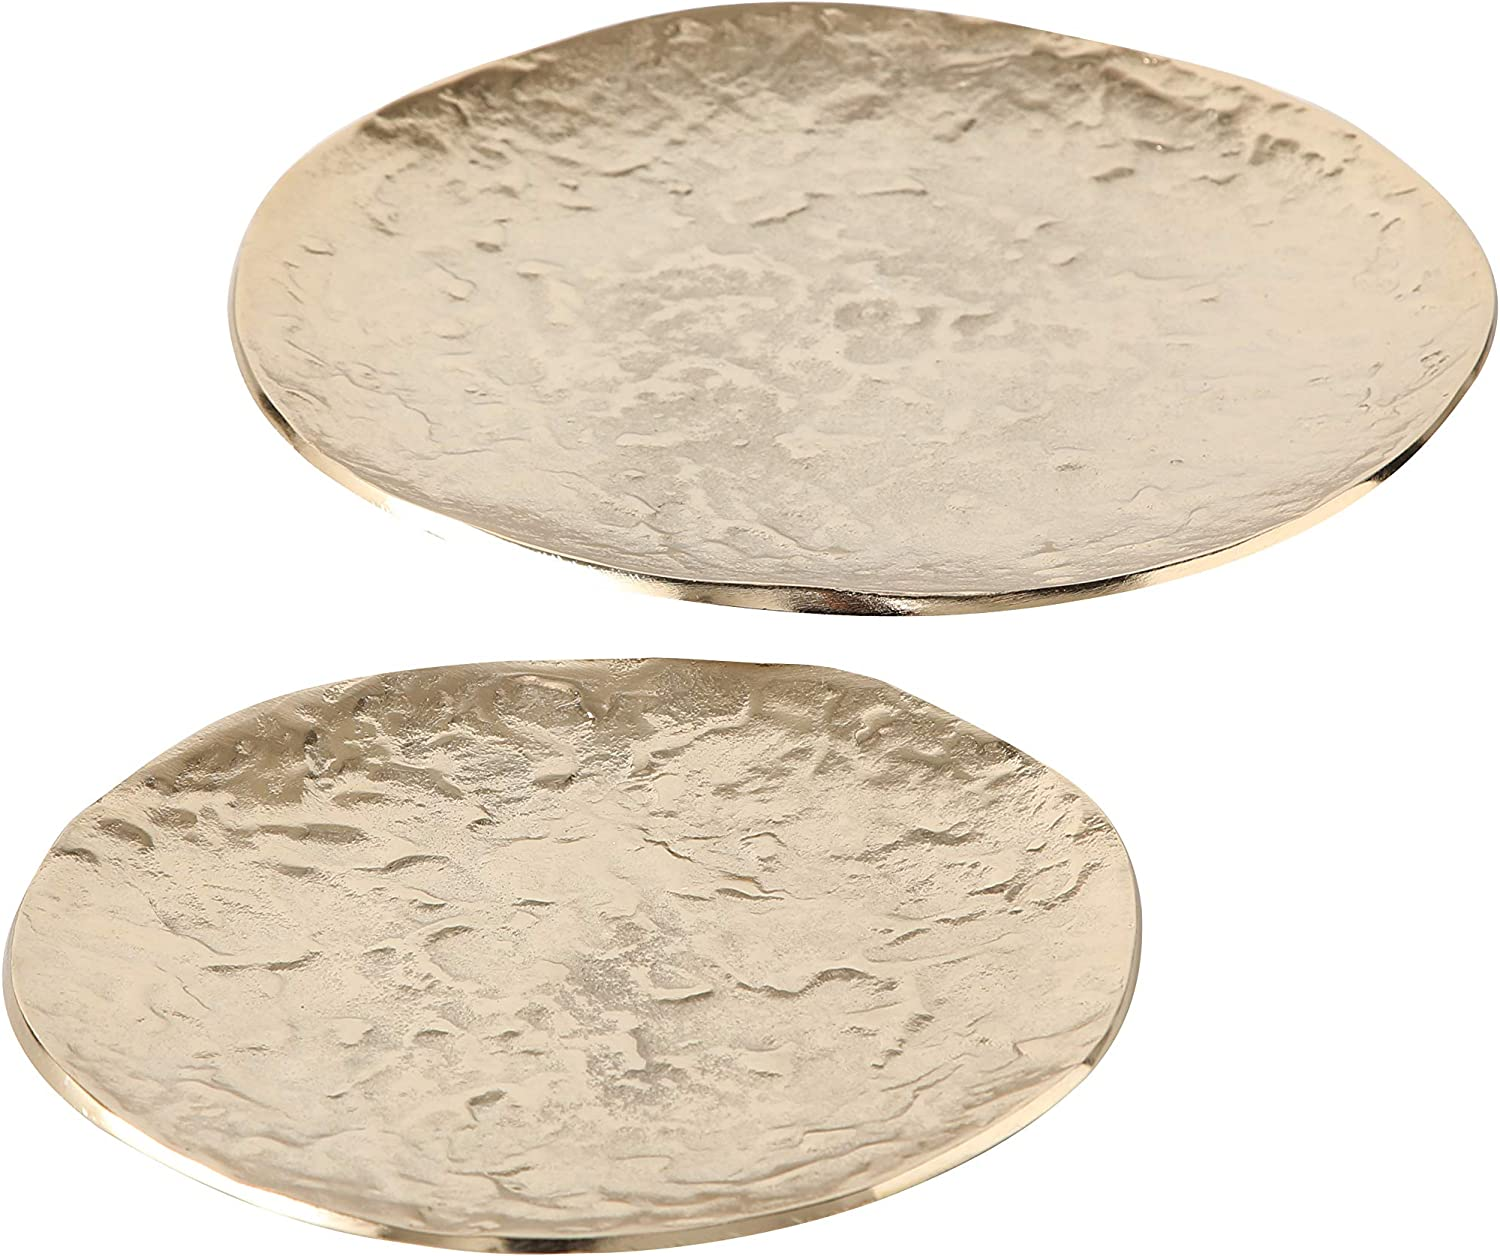 WHW Whole House Worlds Metallic Luna Moon Decorative Candle Tray Plates, Set of 2, Champagne Finish, Round, Hand Cast Aluminum, 10.75 and 8.25 Inches Home Decor